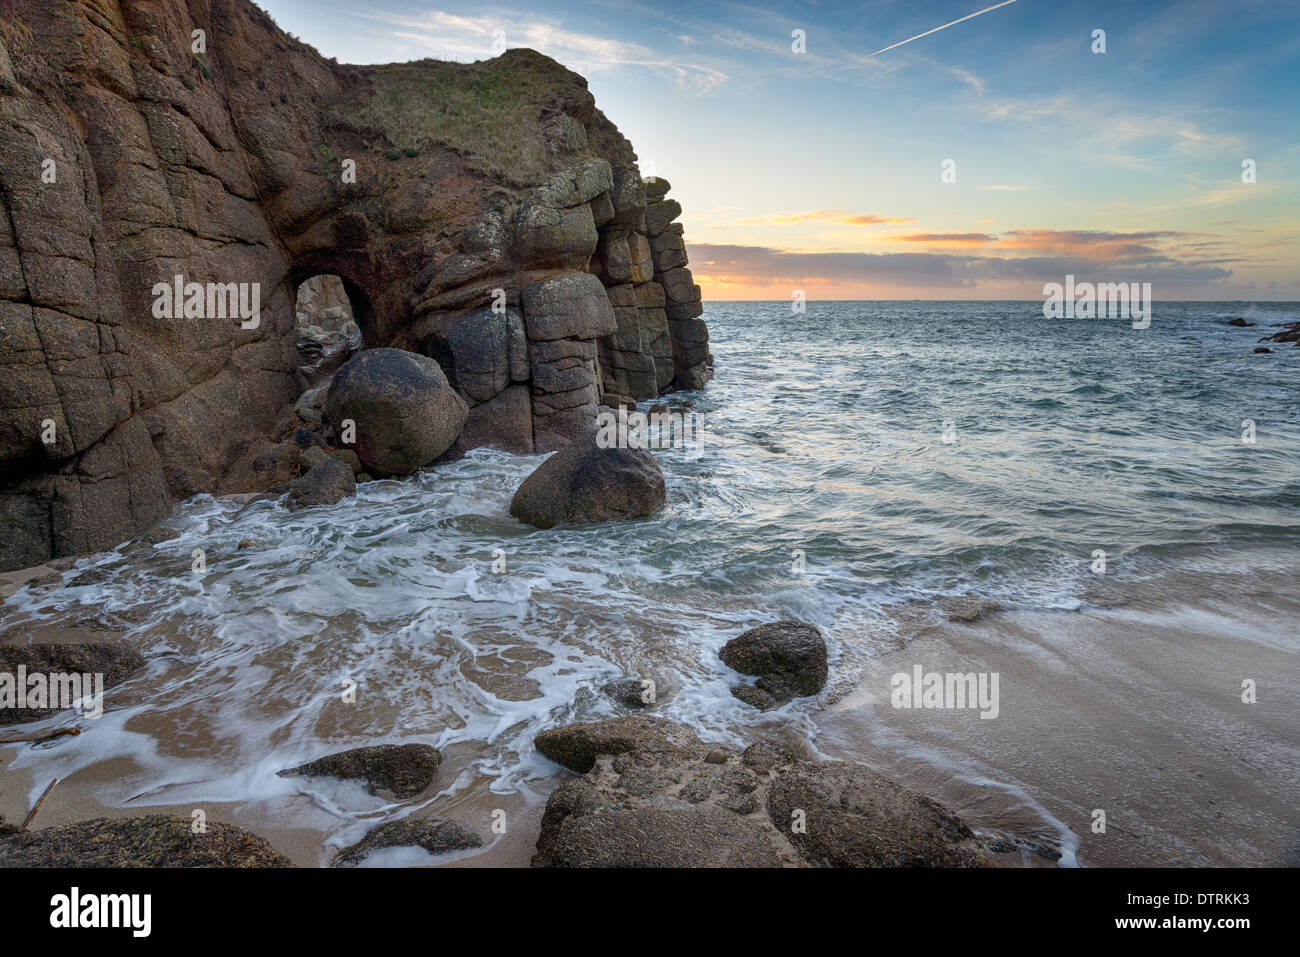 Cliffs and sea caves at Porthqwarra Cove on the Lands End Peninsula near Penzance - Stock Image